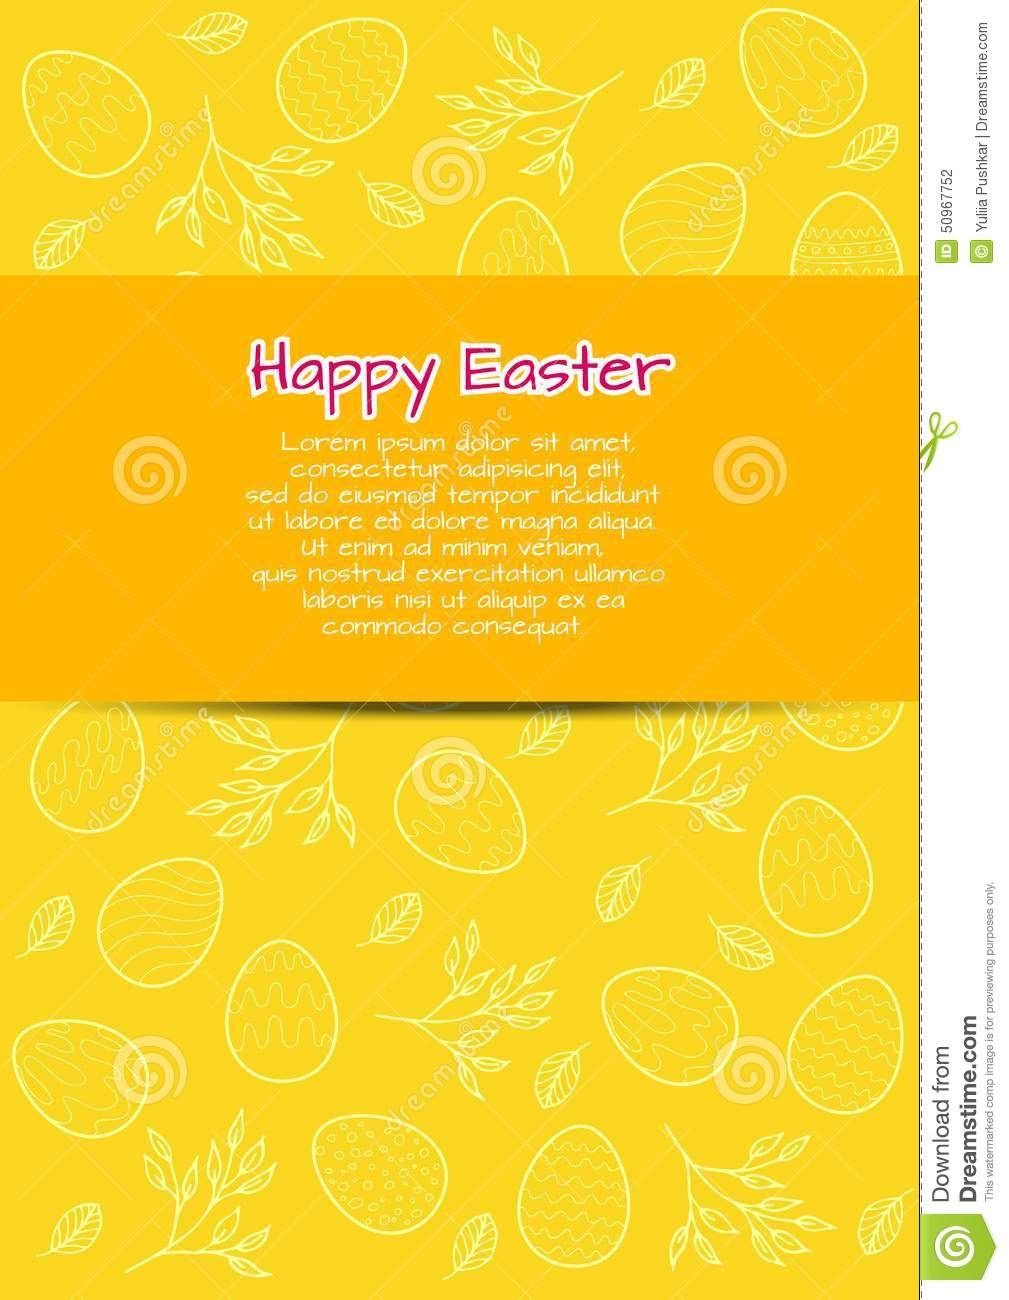 Download Flyer Template For Easter Stock Vector. Illustration Of Happy -  50967752